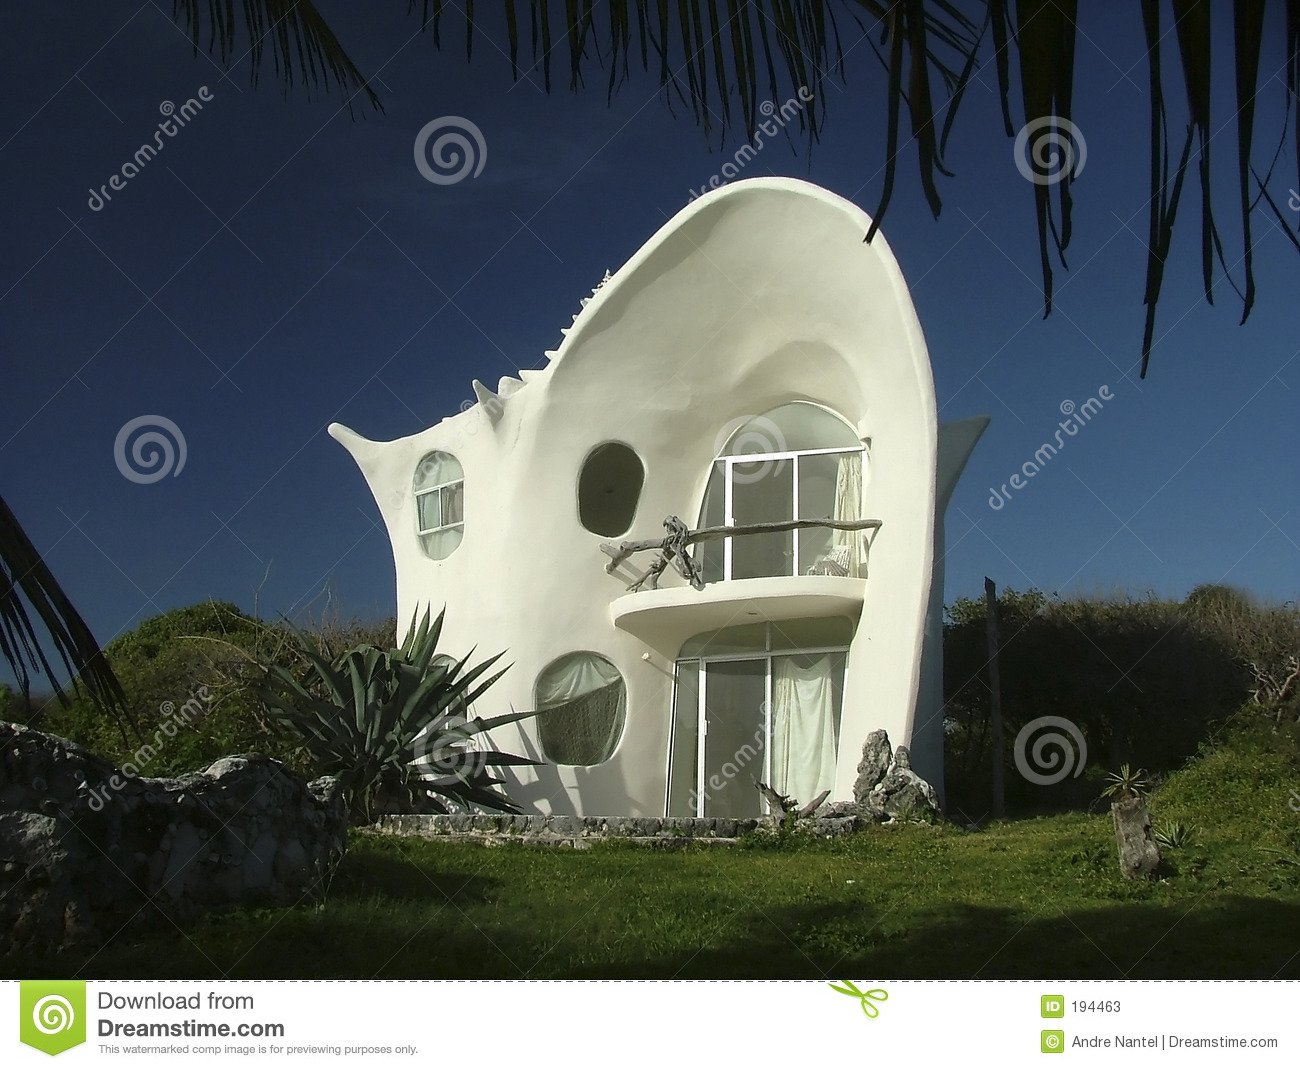 Casa do Seashell